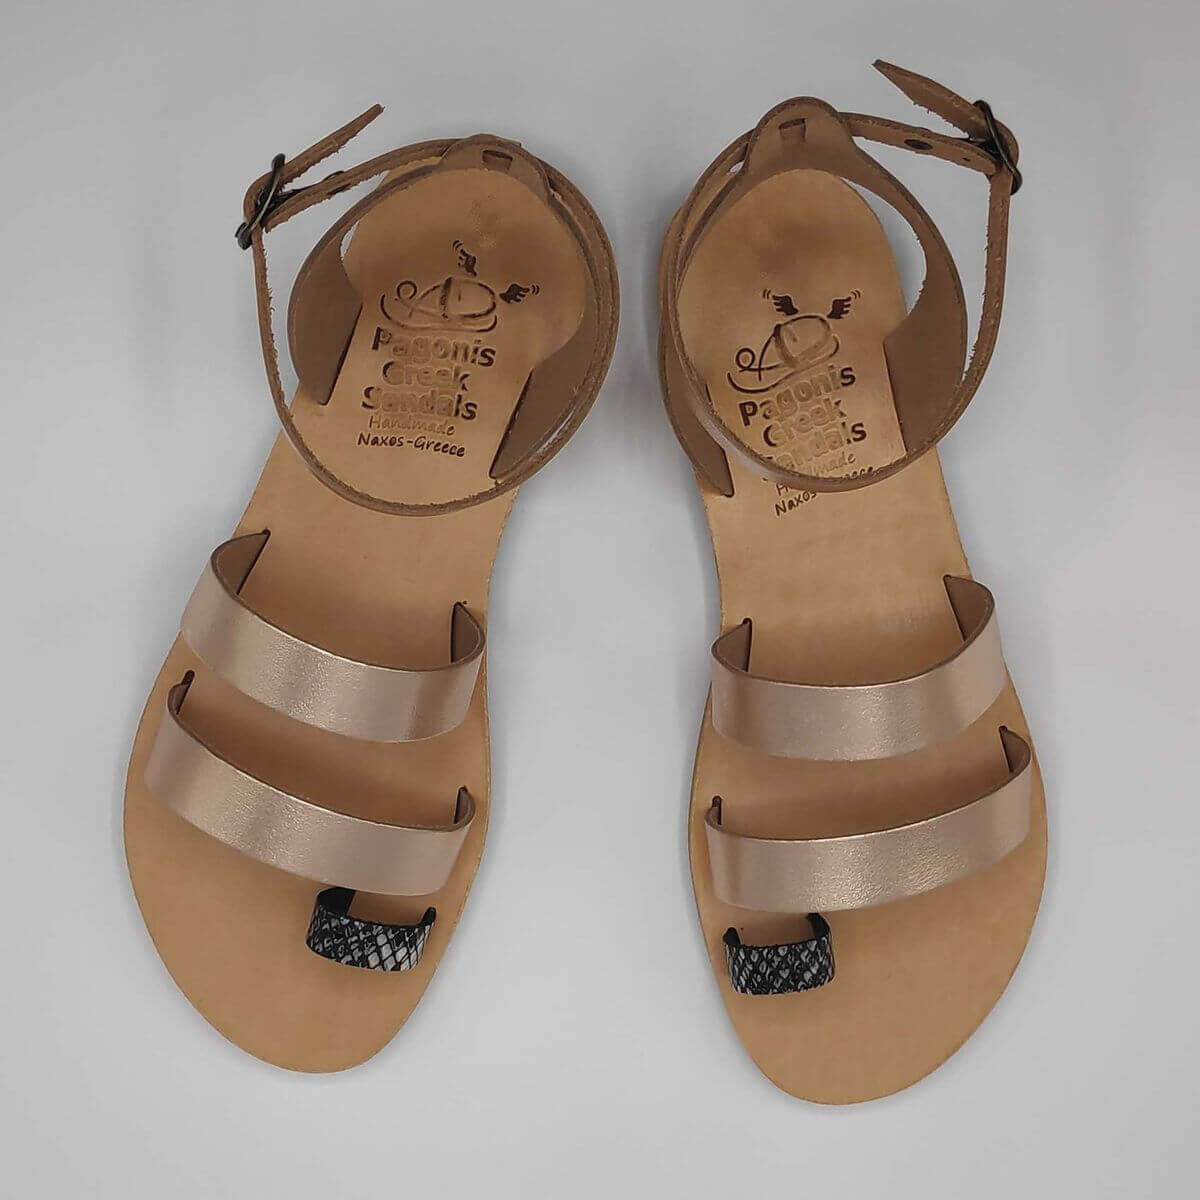 Rose gold leather dressy sandals with two straps, toe ring and high ankle strap, top view